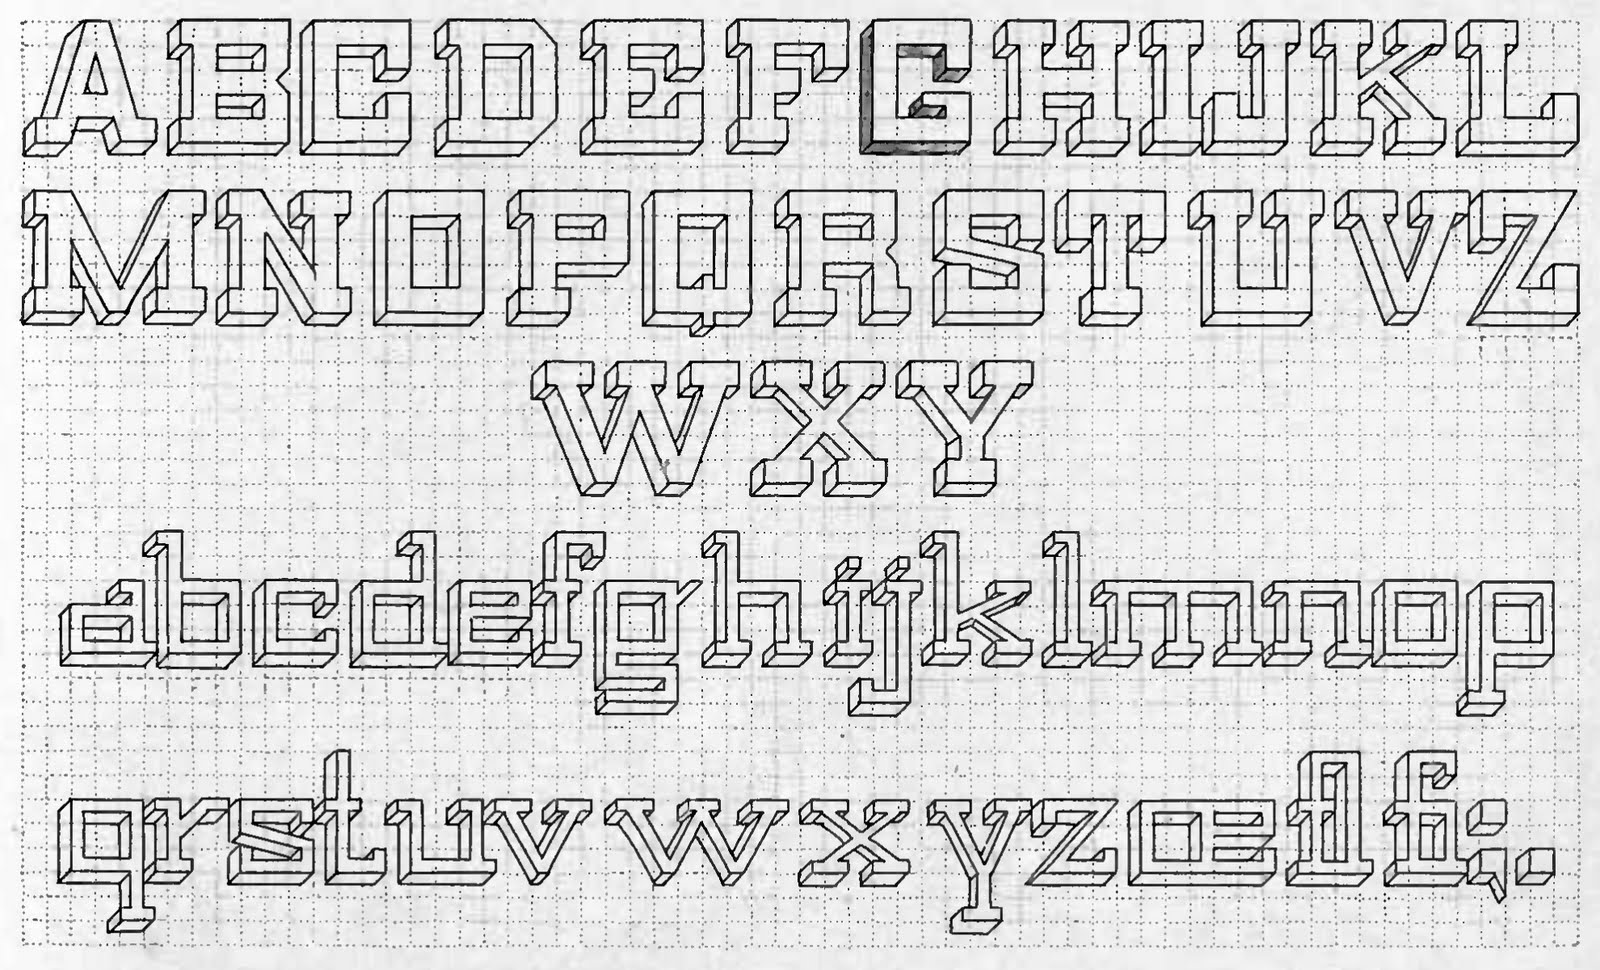 ive included some specimens of various alphabets below that you can either print and trace or using grid paper reproduce yourself